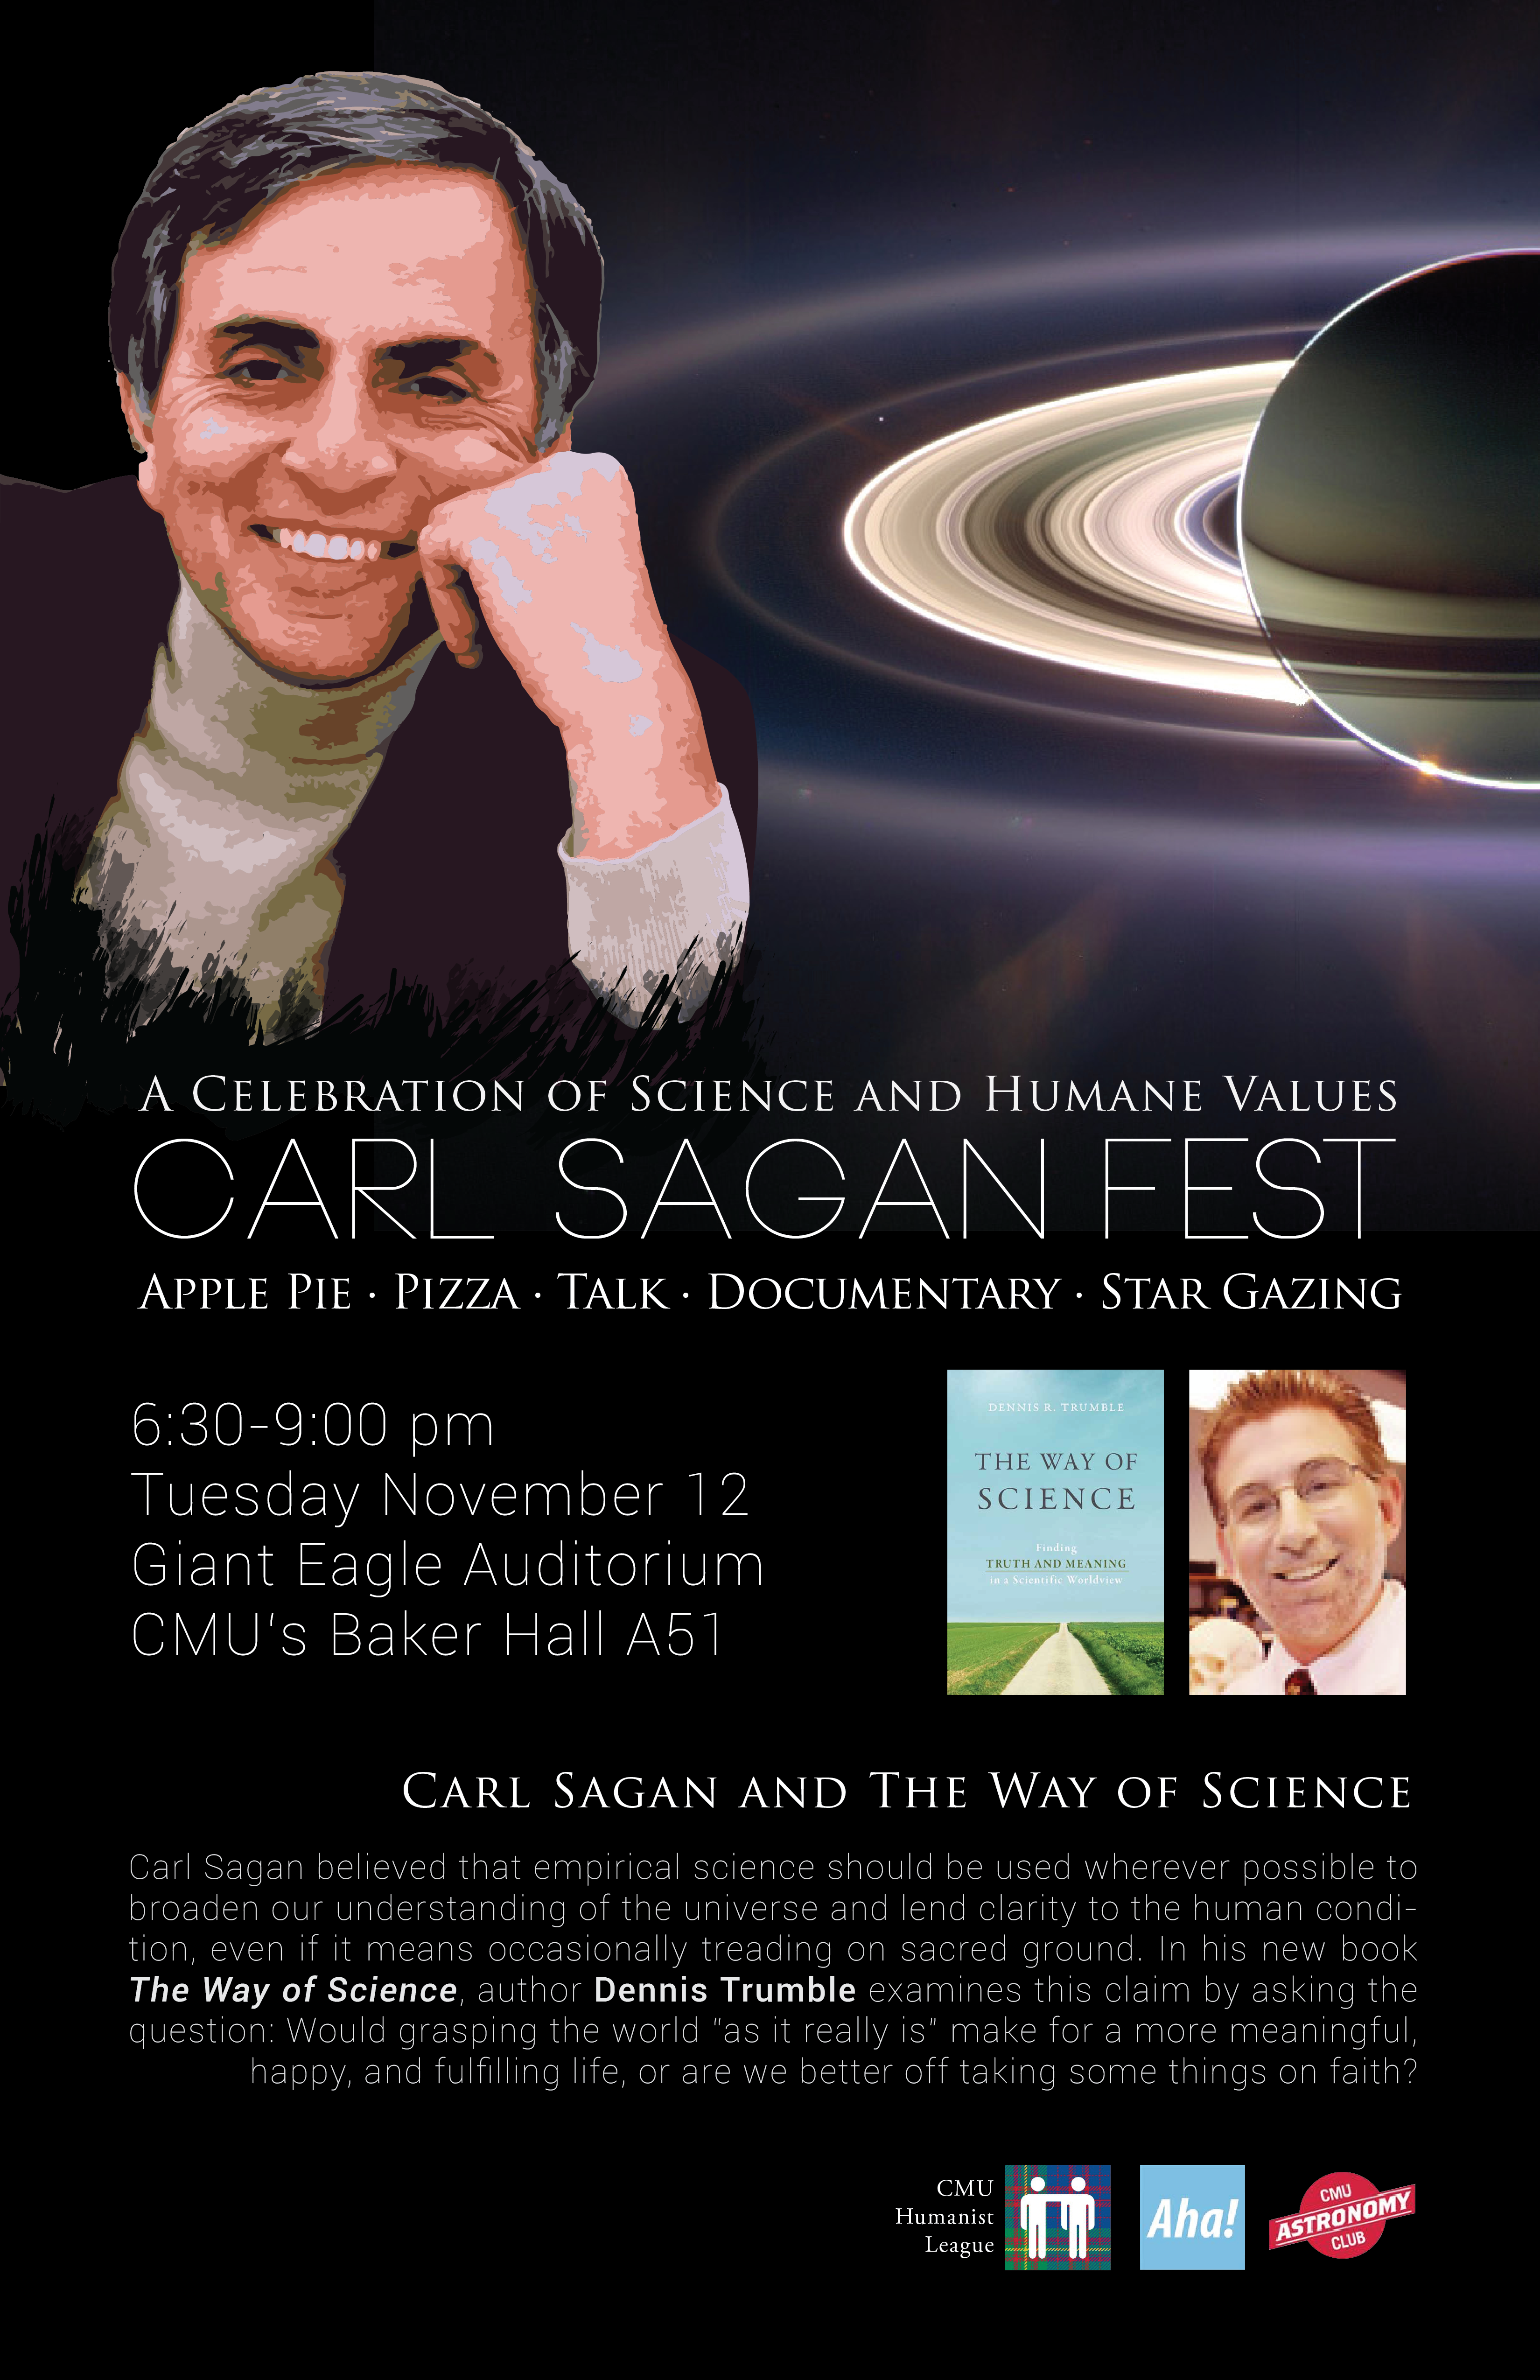 Carl Sagan Fest – Carl Sagan and The Way of Science Poster